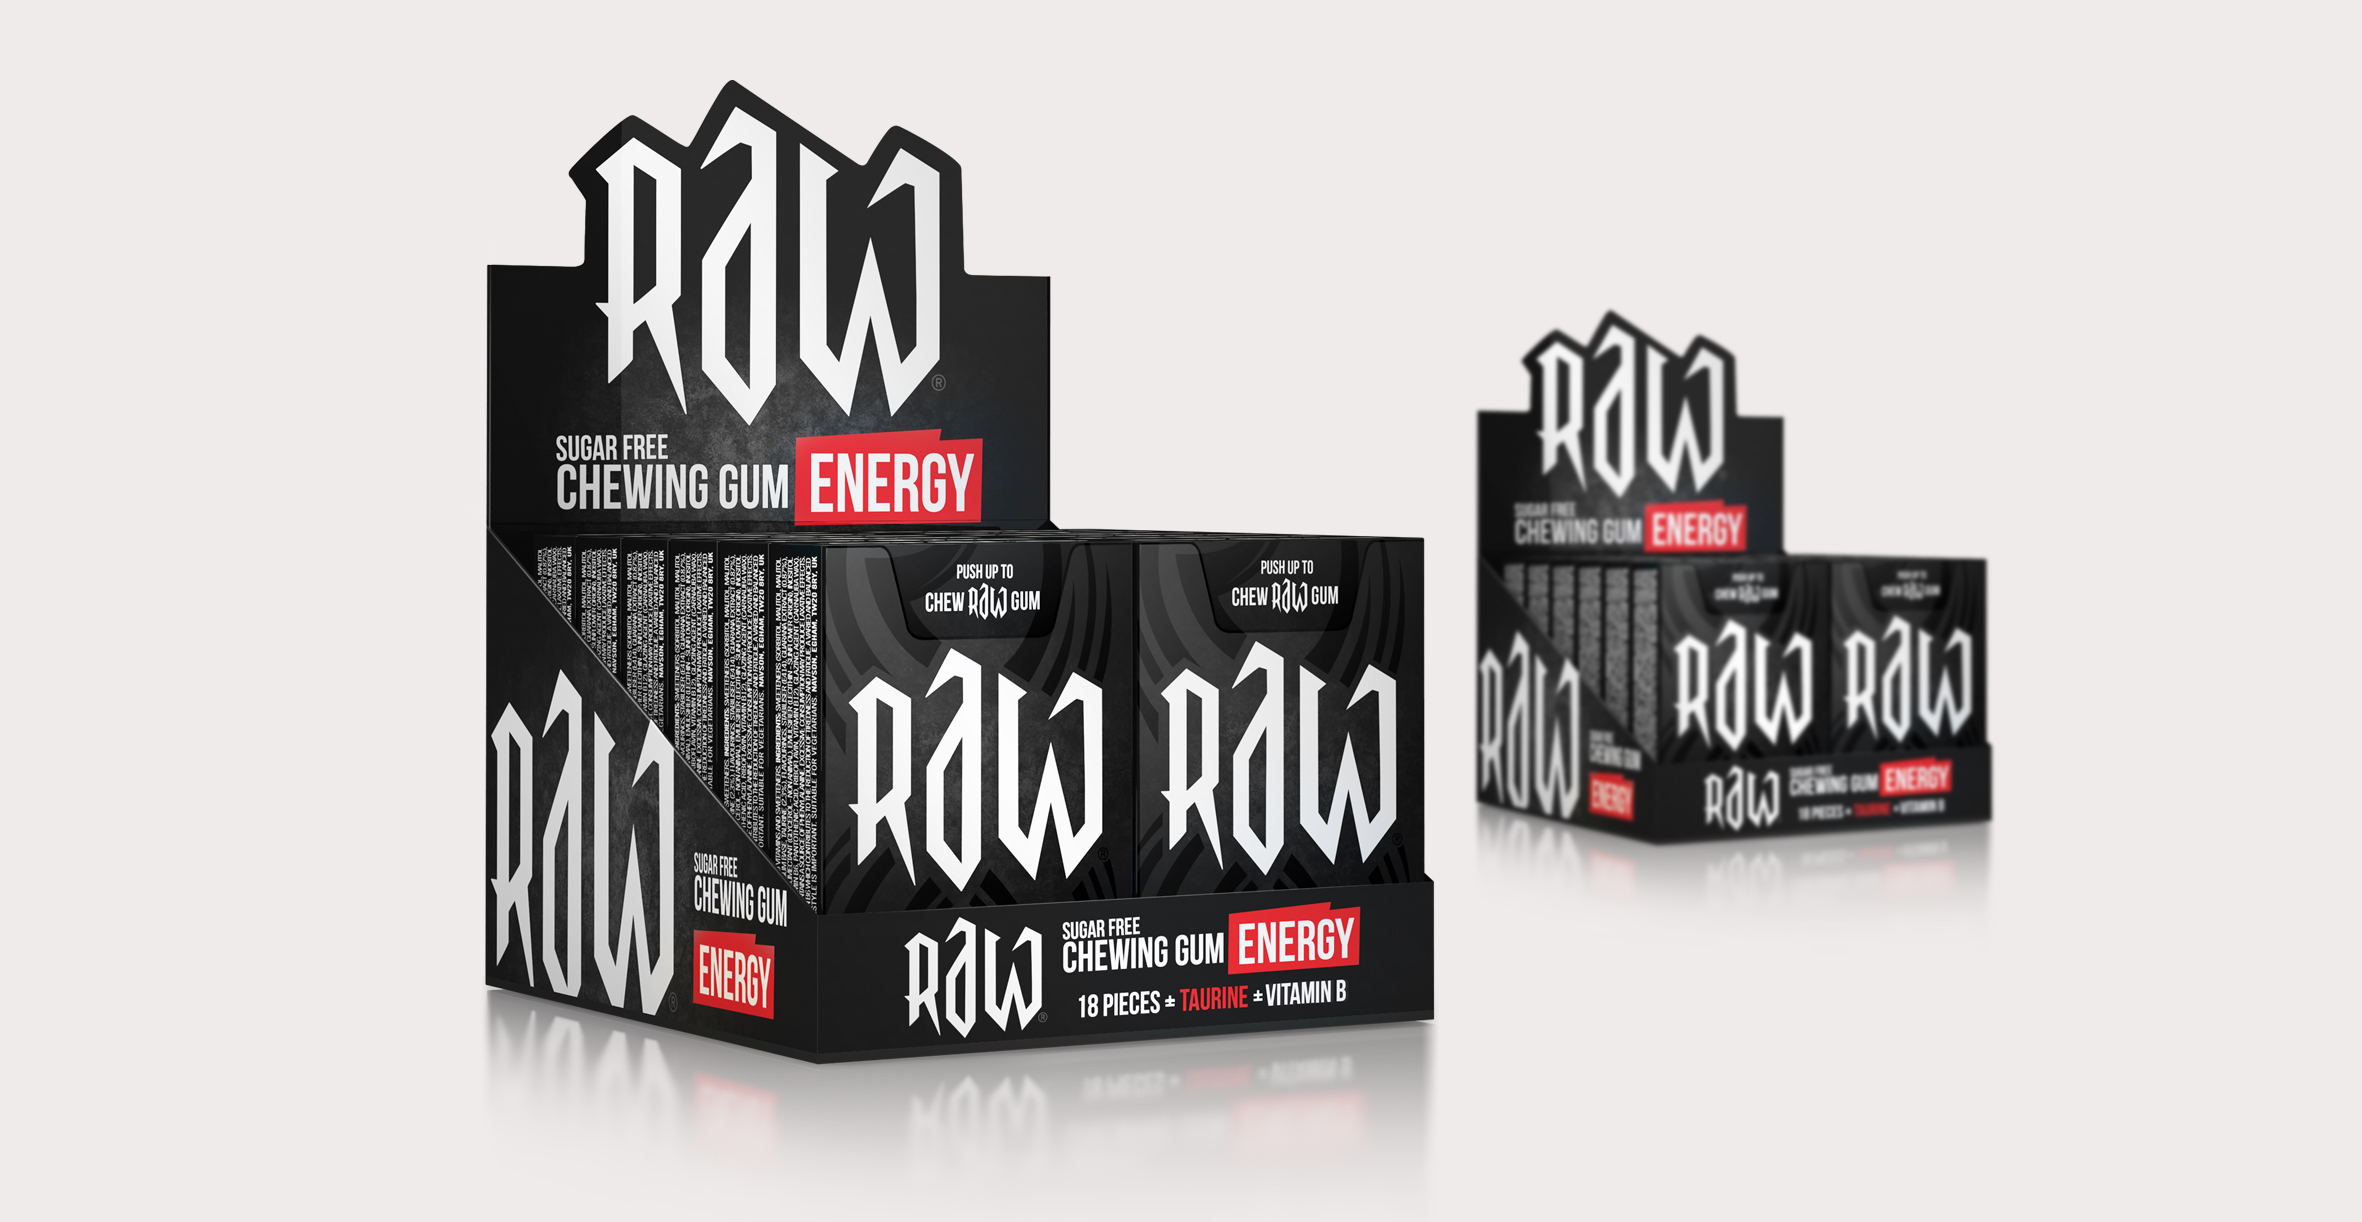 Confectionary packaging design and branding for chewing gum brand Raw by Design Happy London - Shelf ready packaging